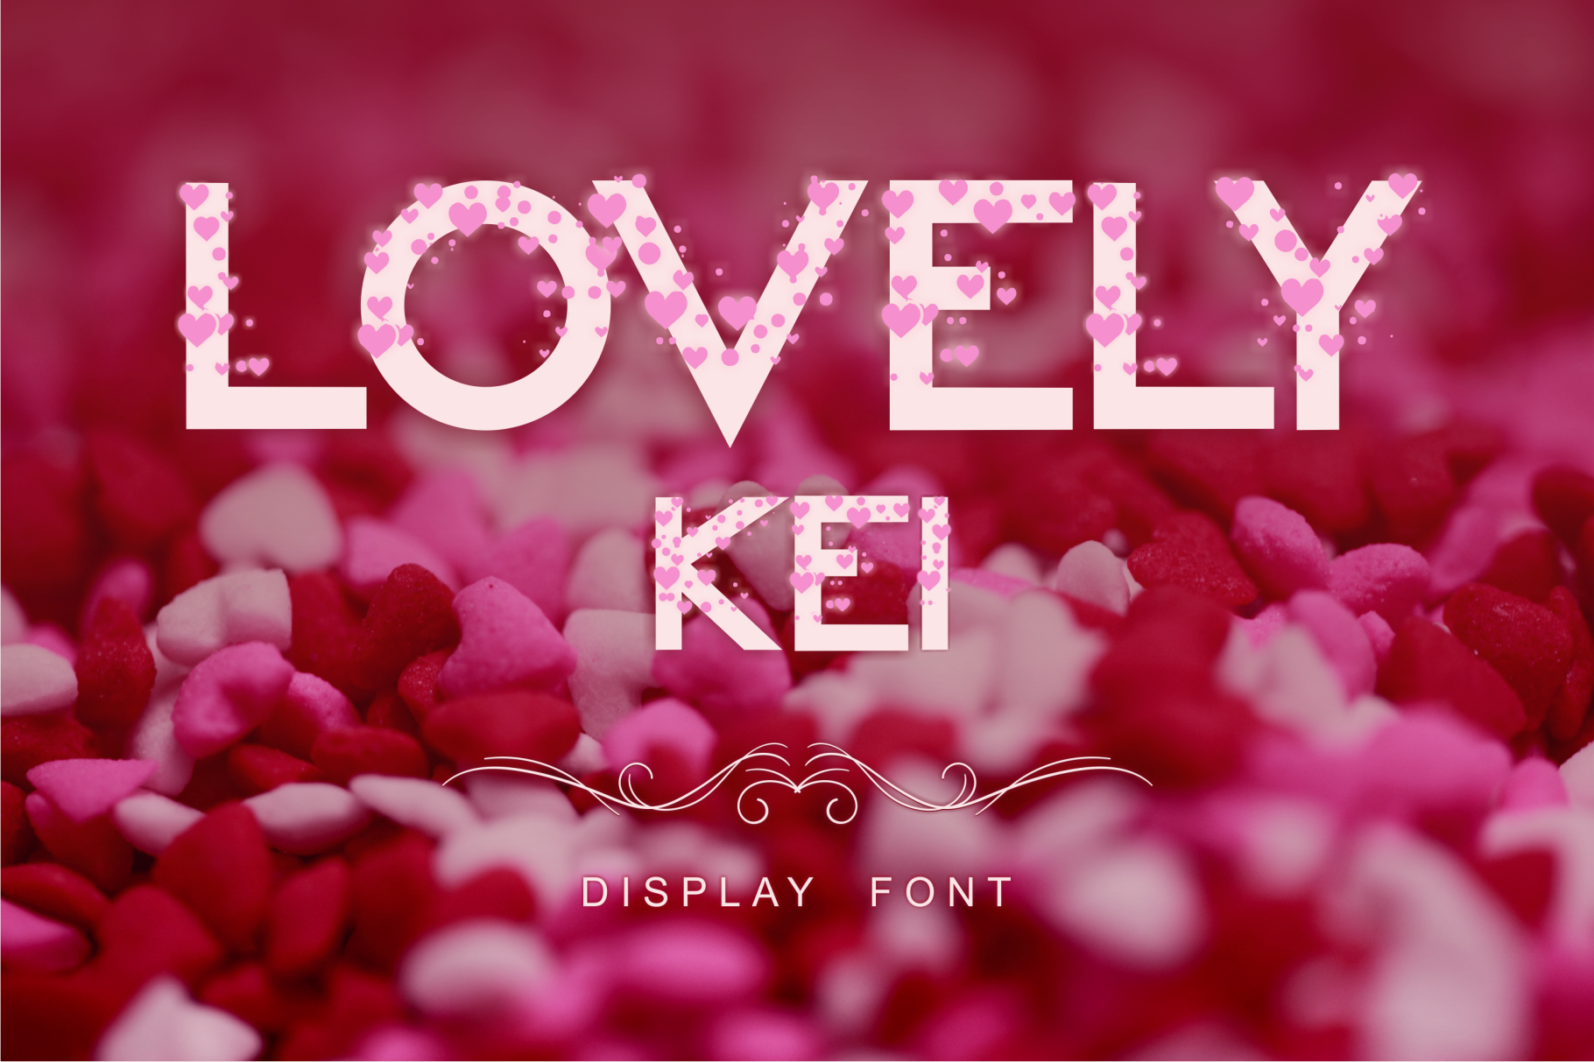 Creative Font Bundle - Preview Lovely Kei 1 -